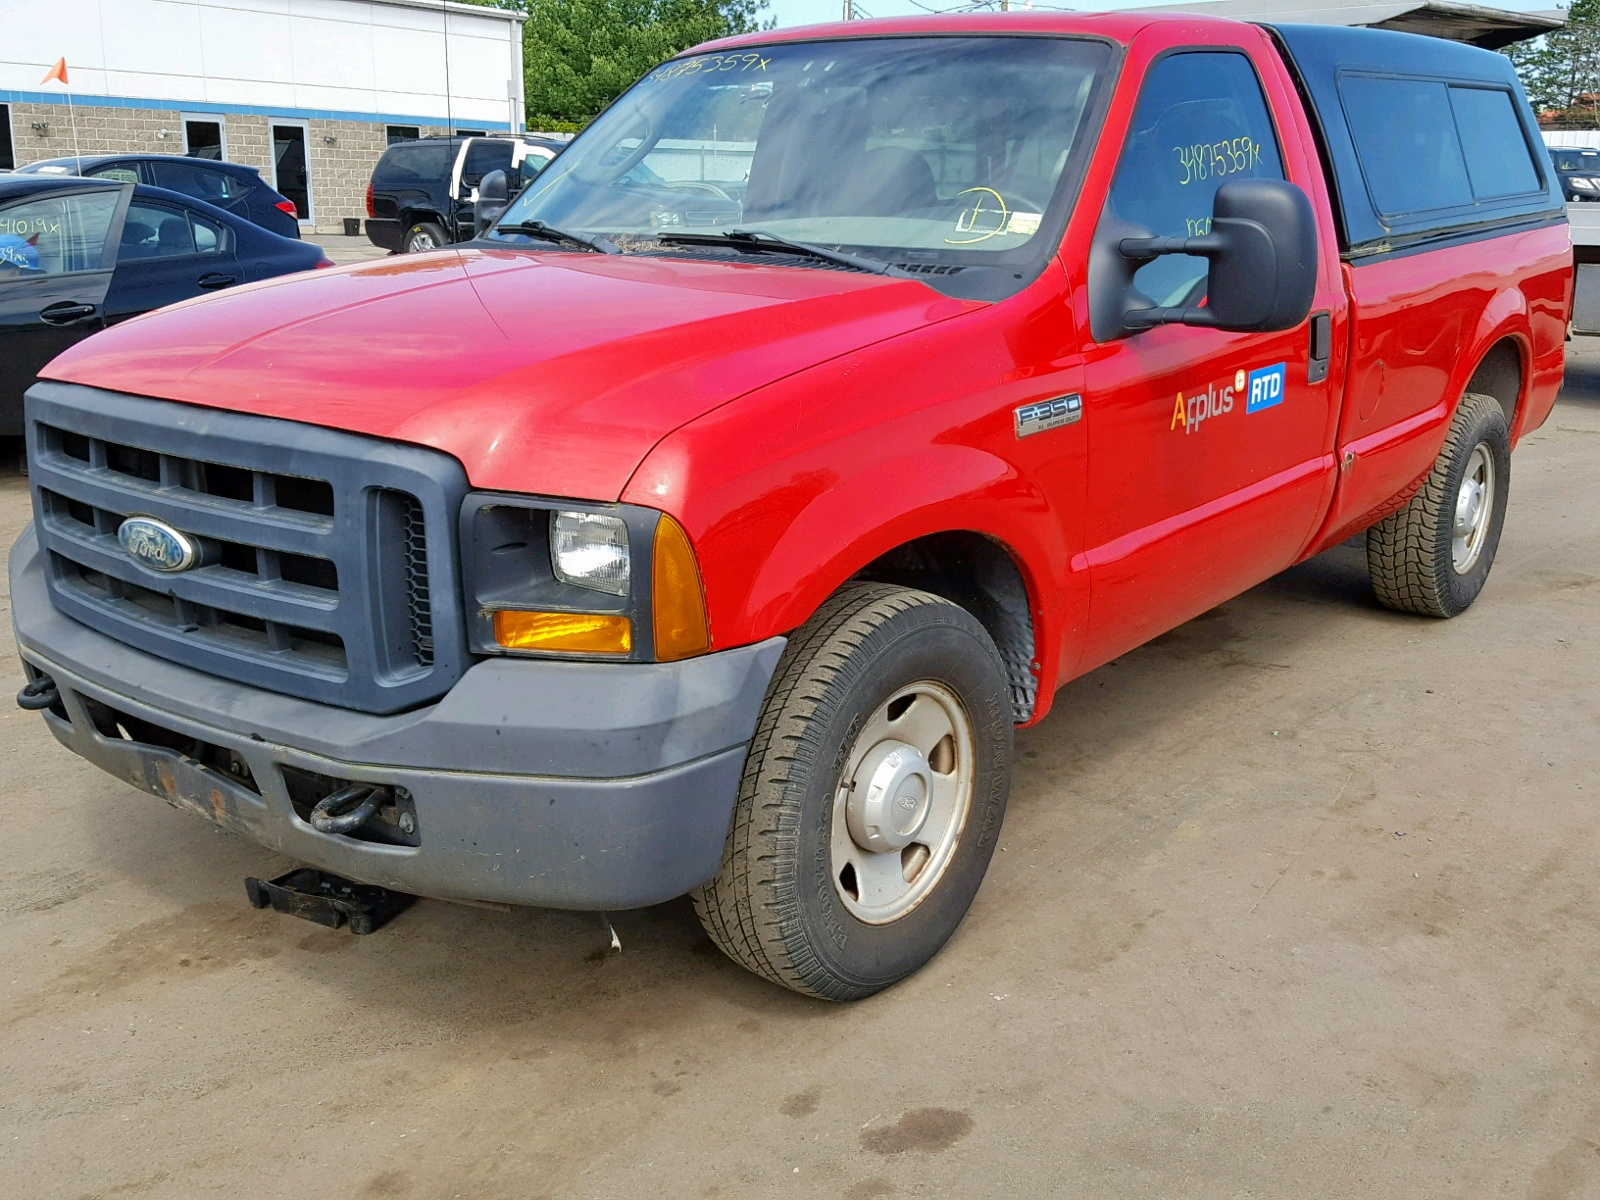 hight resolution of  1ftsf30546ed95705 2006 ford f350 srw s 5 4l right view 1ftsf30546ed95705